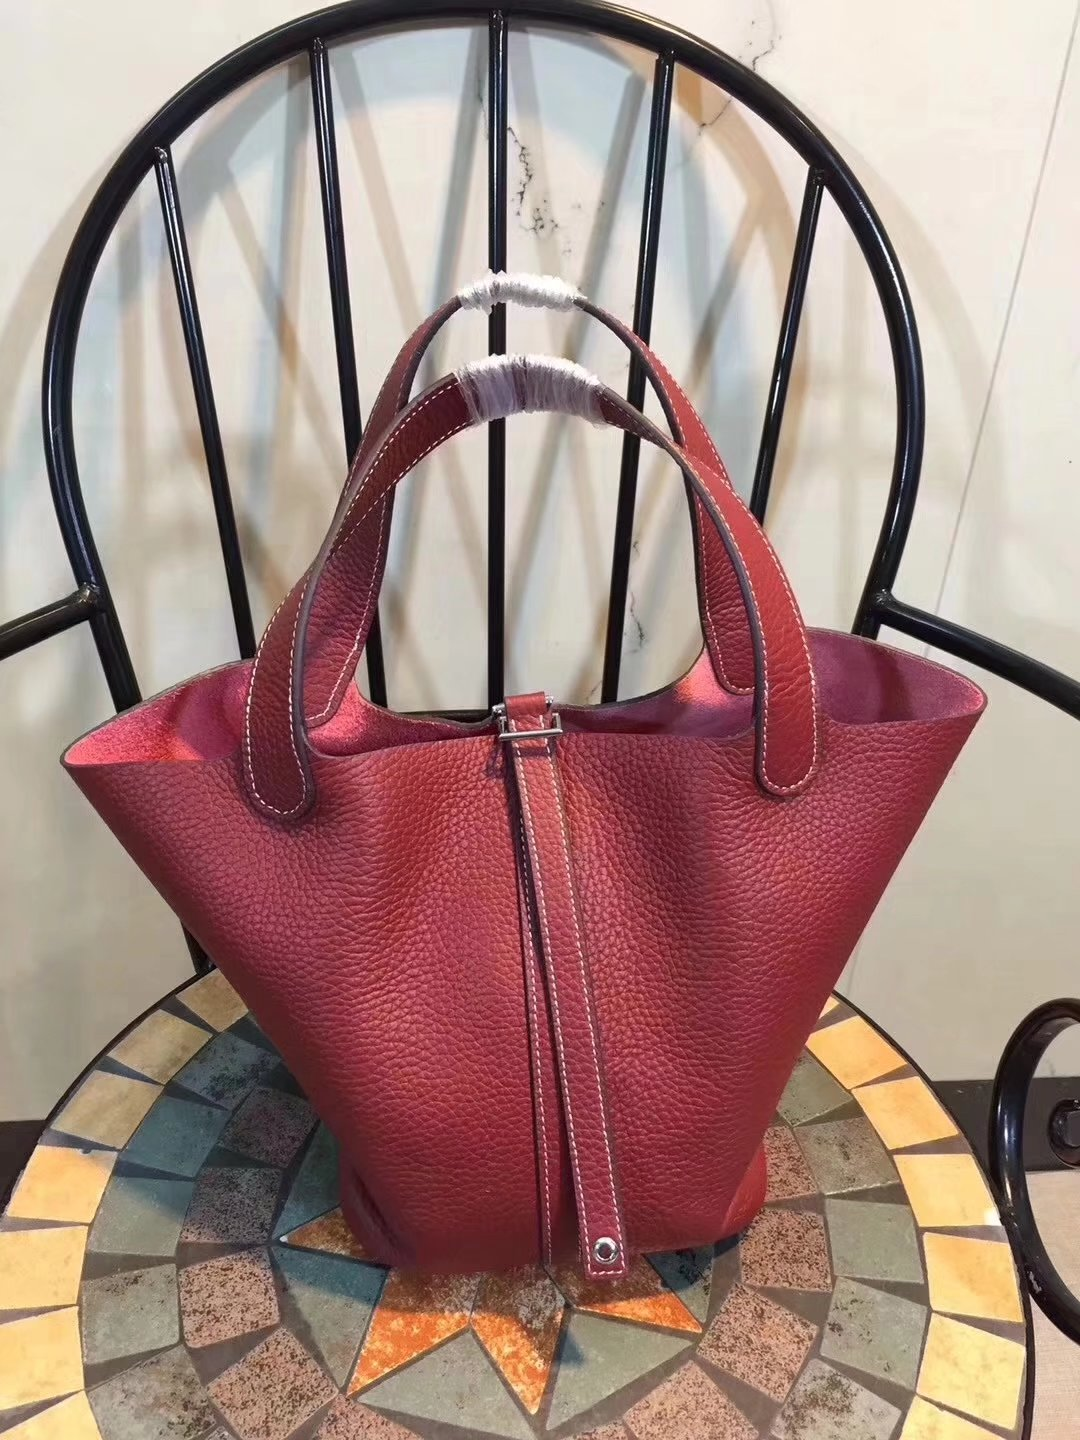 Hermes Poction 18cm 22cm Swift Calf Togo Leather Tote Bag Deep Red